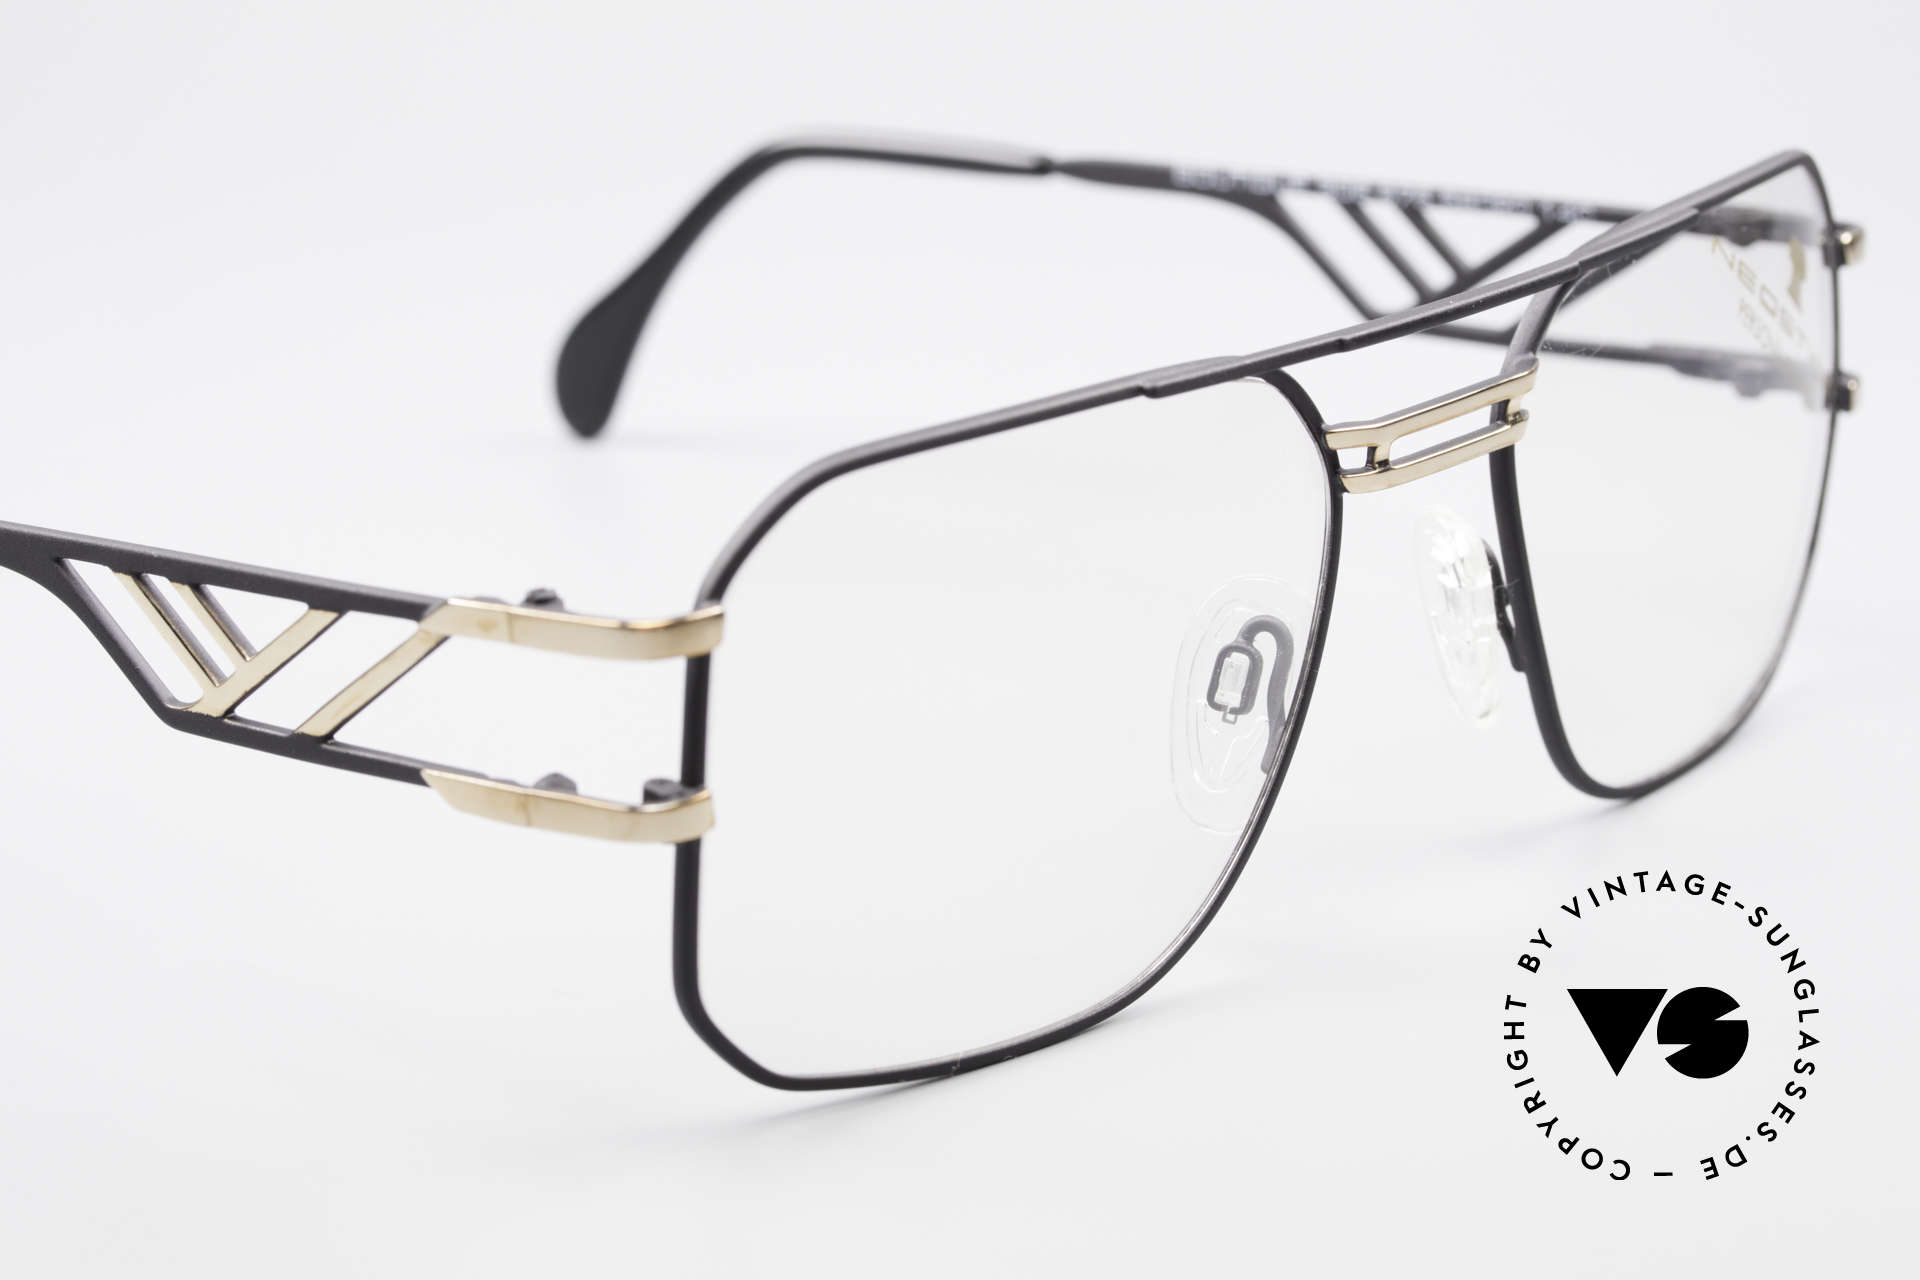 Neostyle Boutique 306 Champion Vintage Frame 80s, NO RETRO specs, but a 33 years old ORIGINAL!, Made for Men